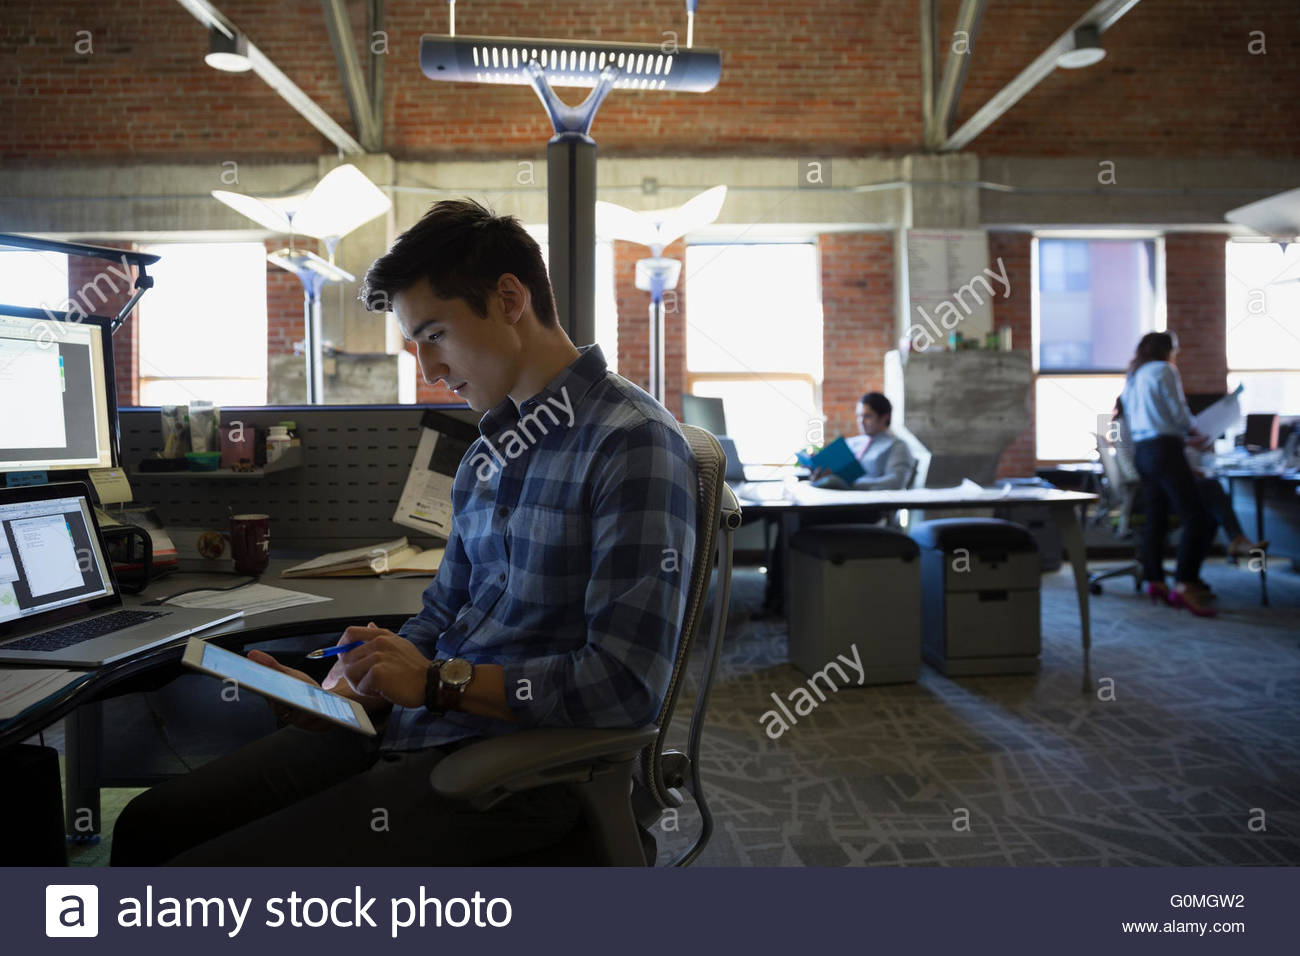 Businessman using digital tablet at desk in office - Stock Image